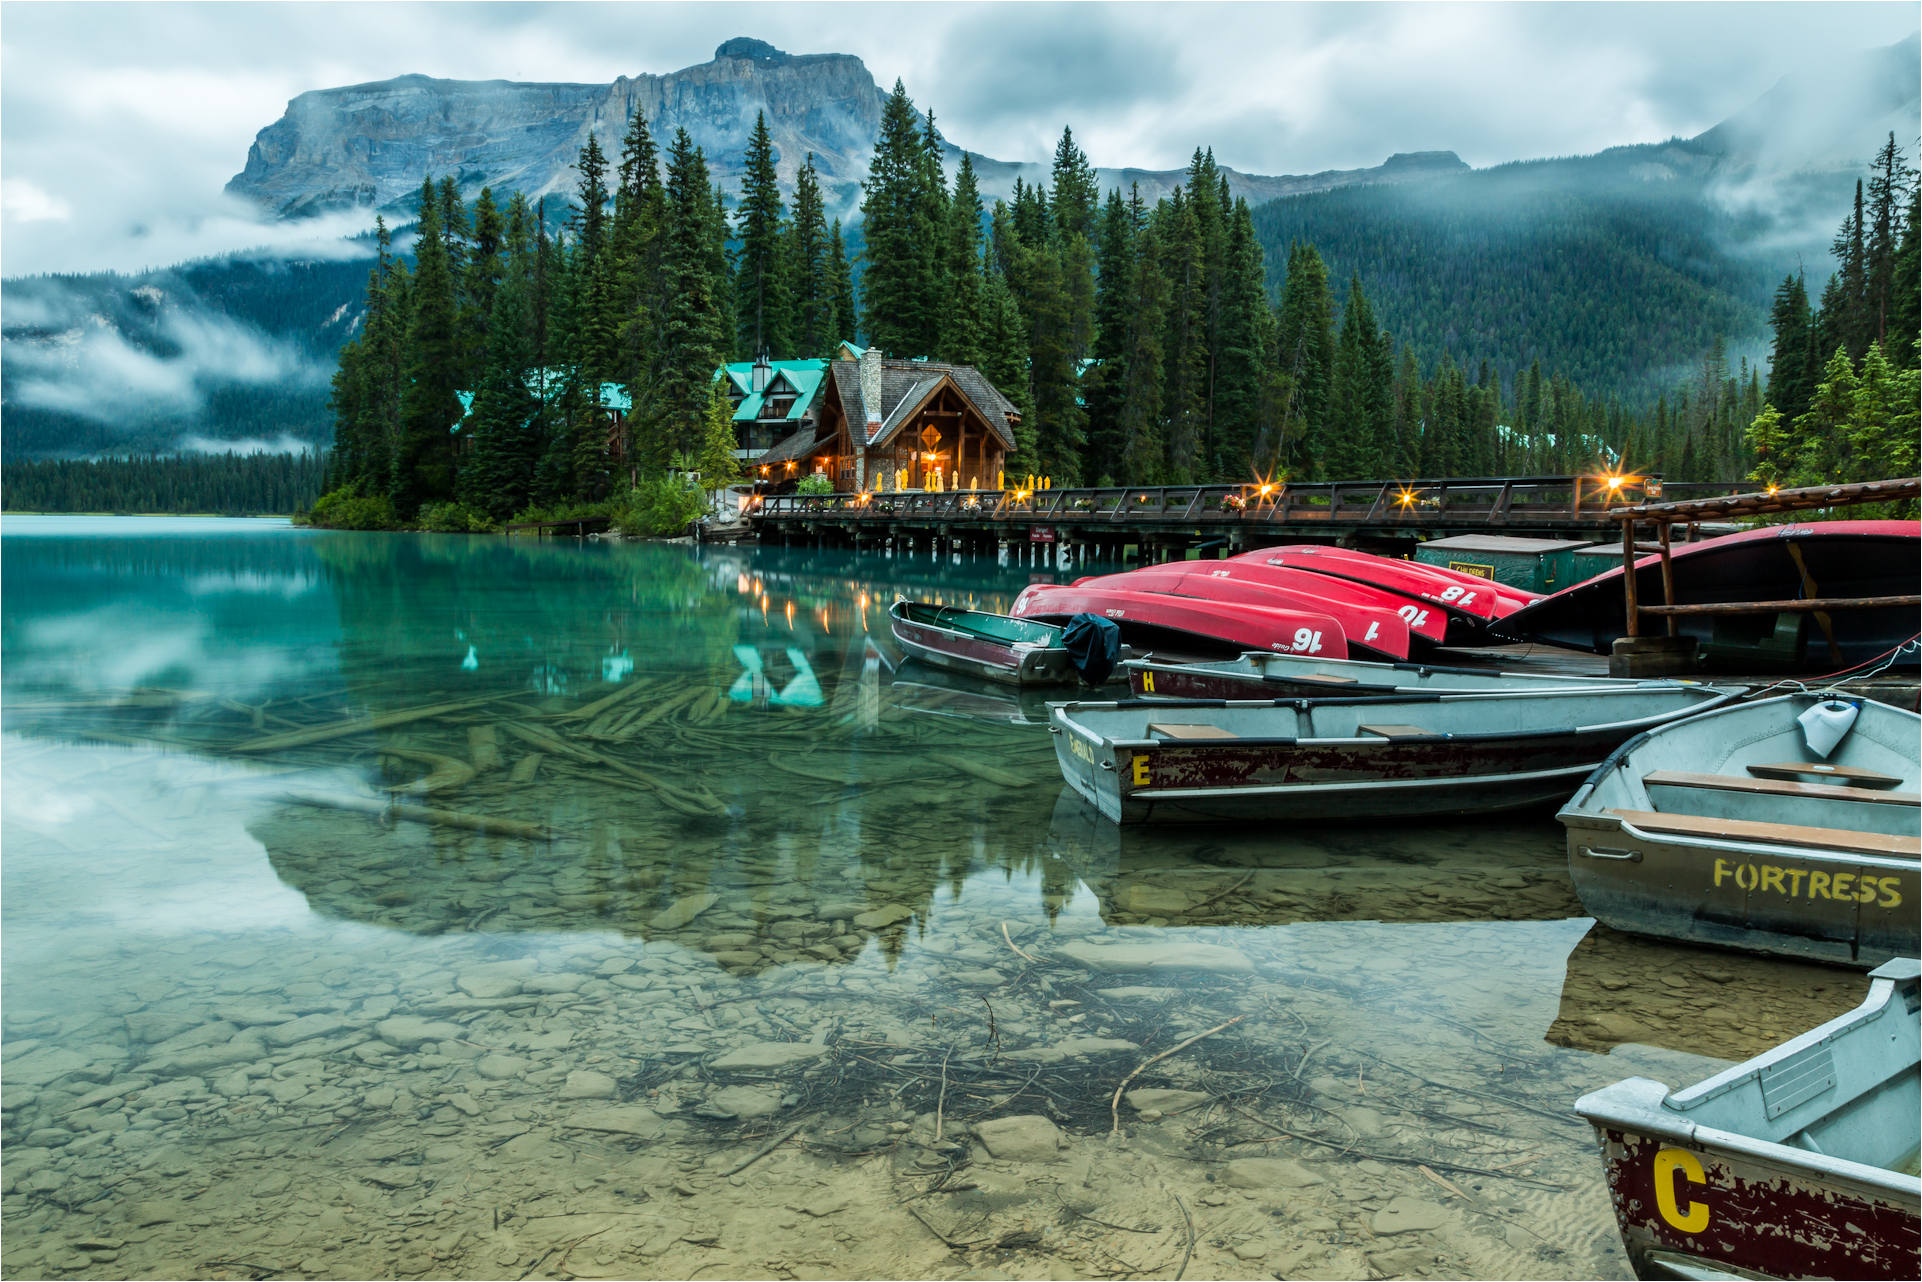 emerald-lake-c2a9-christopher-martin-7711-2